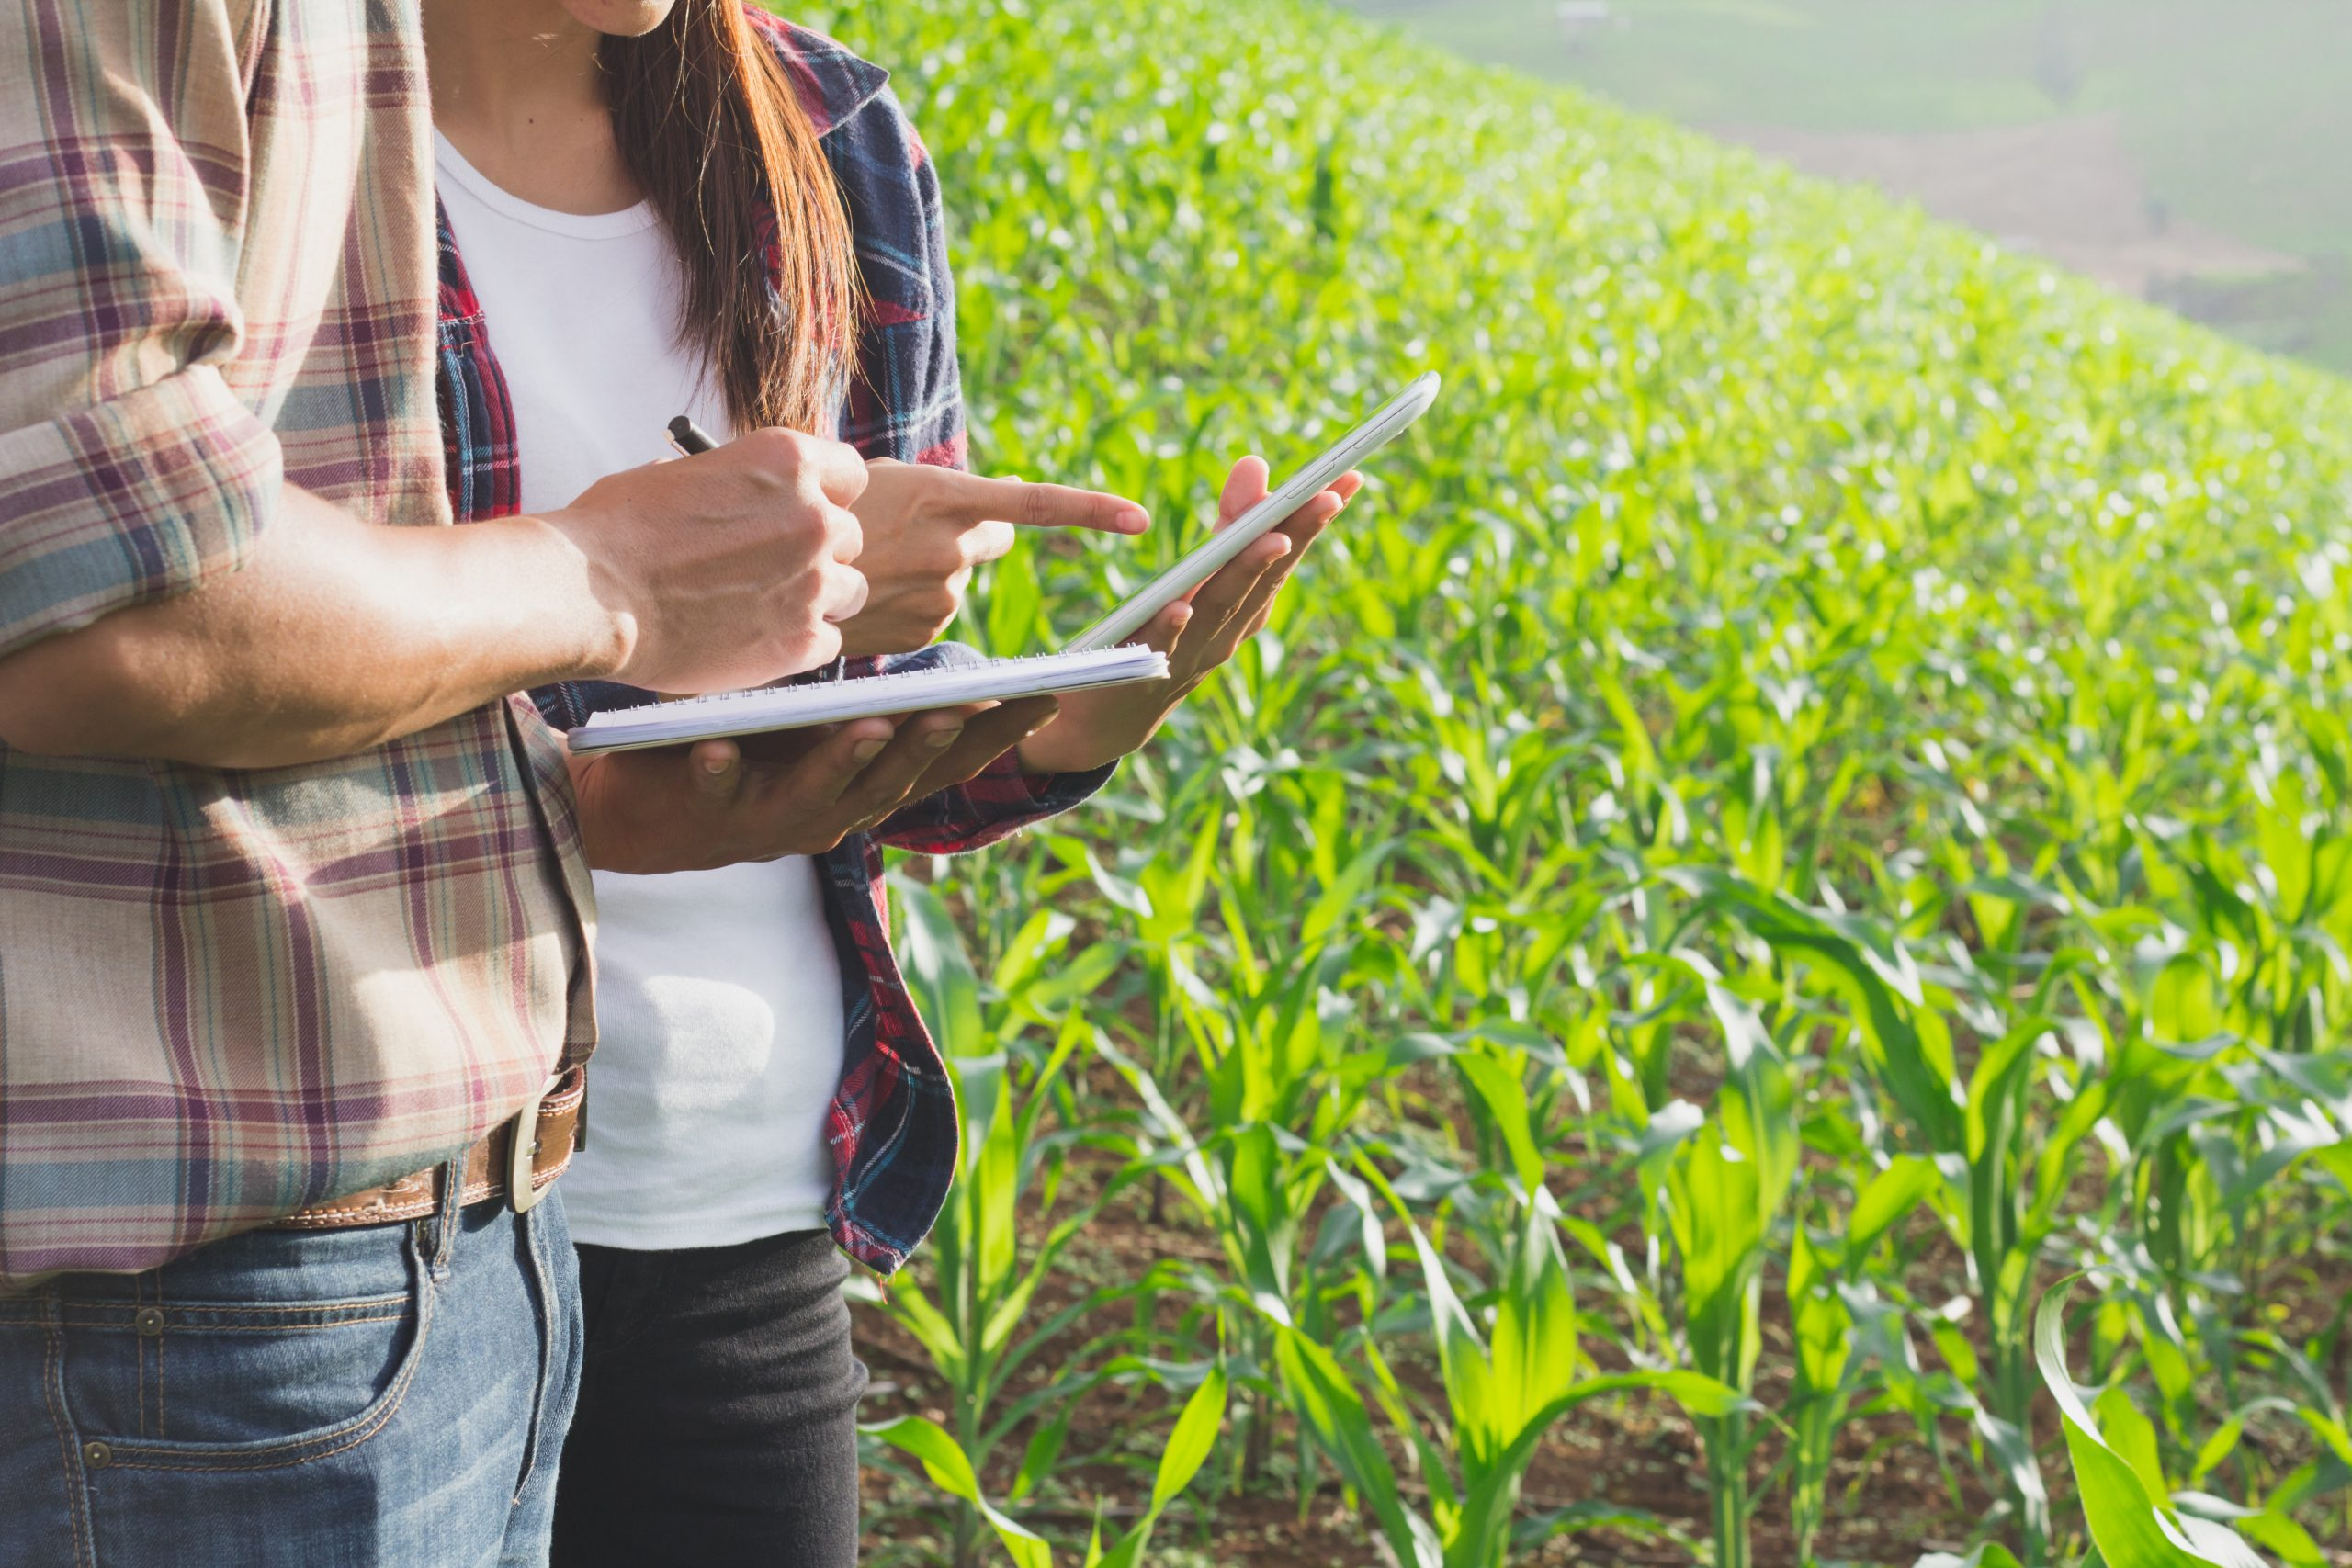 Farmers examining crops for care